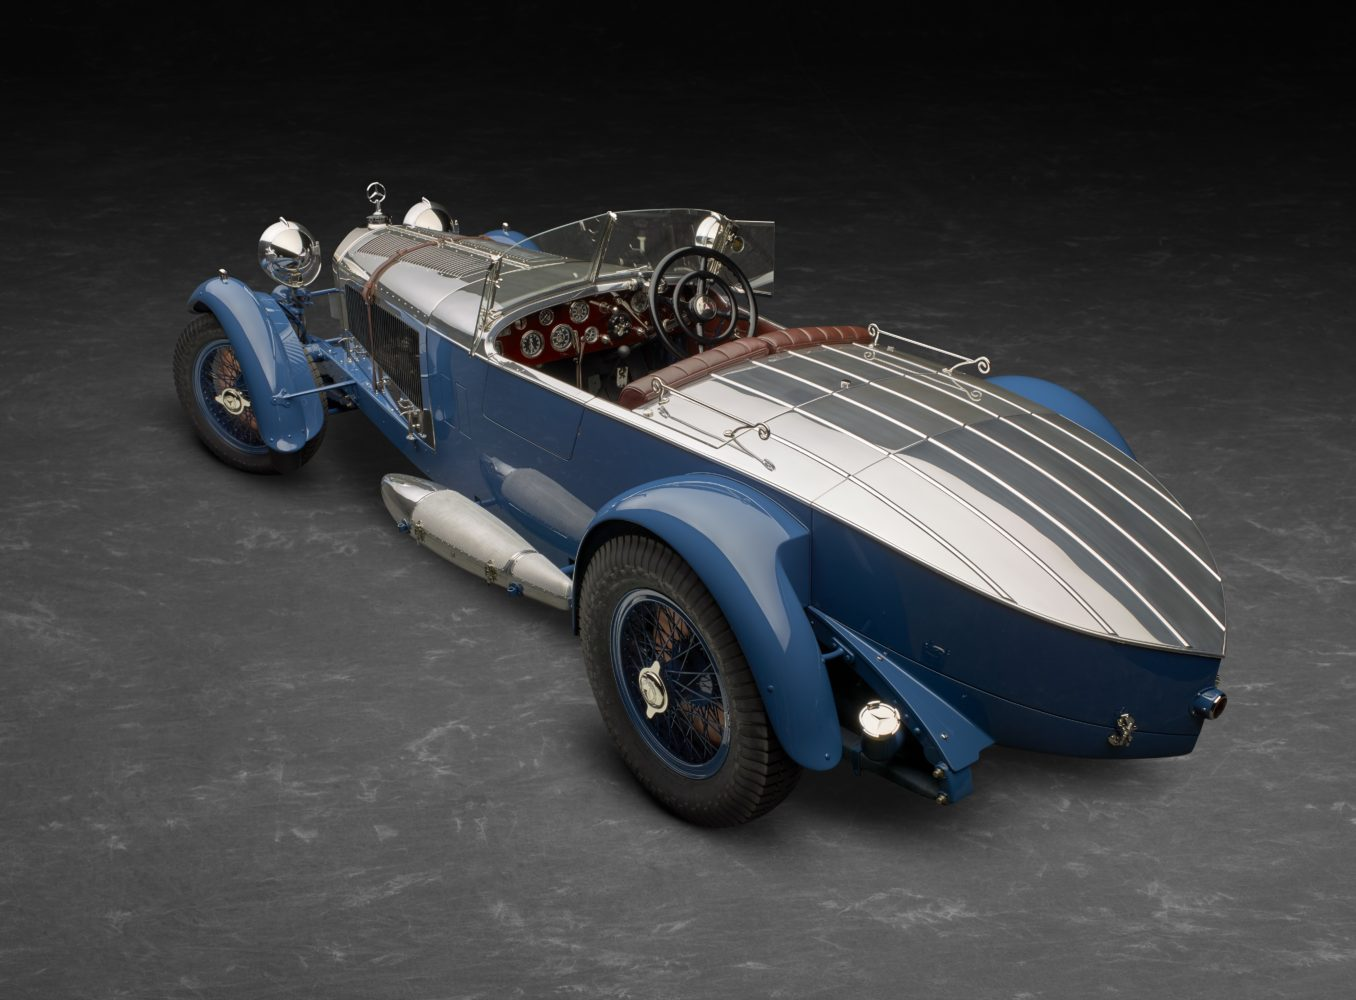 'World's Finest Car' Confirmed for Concours of Elegance